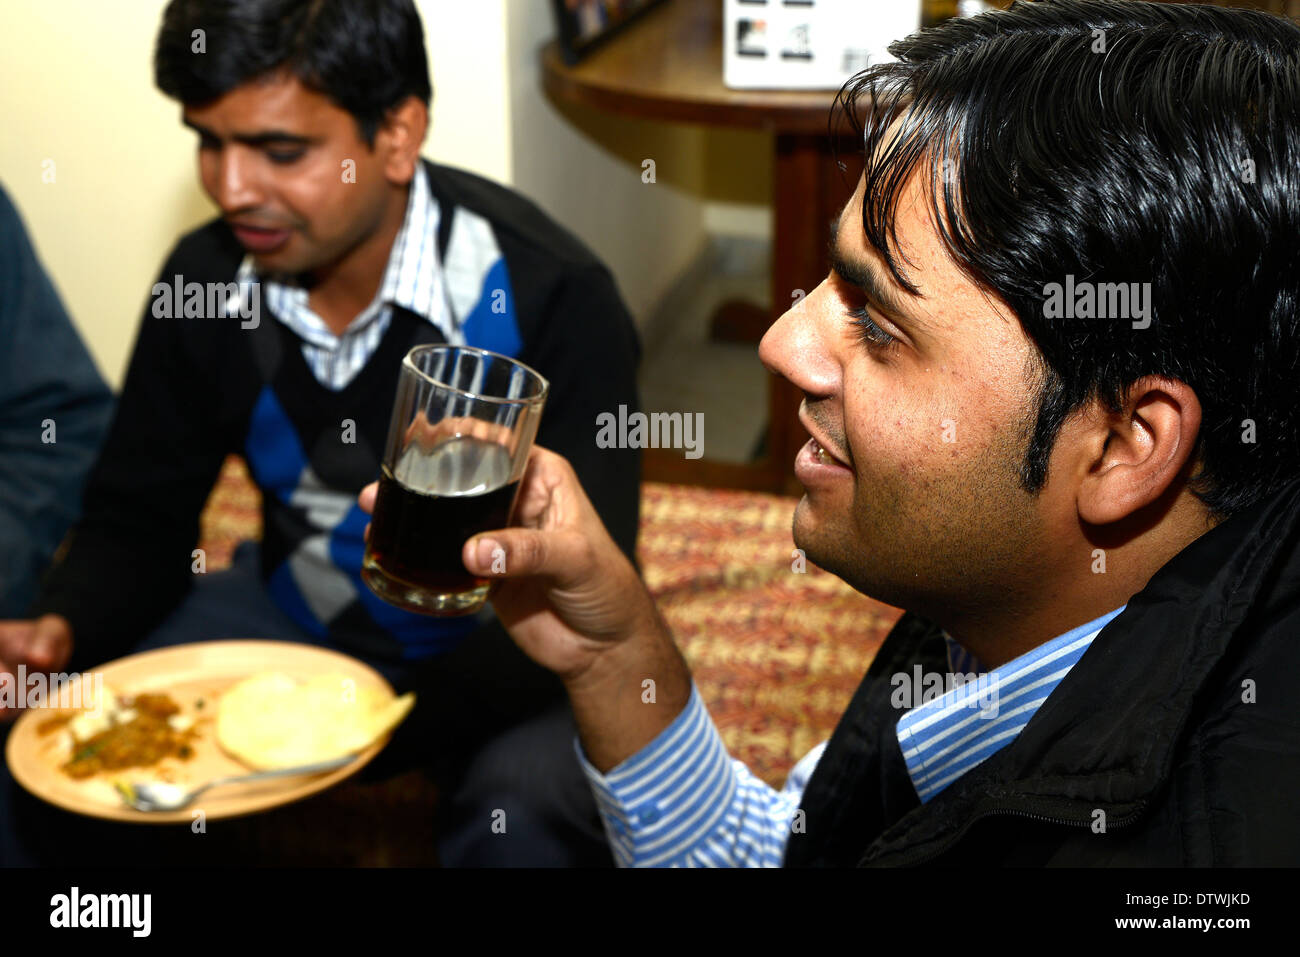 Friends,men,boy,people,Indian,Party,partying,drink,drinking,food,happy - Stock Image